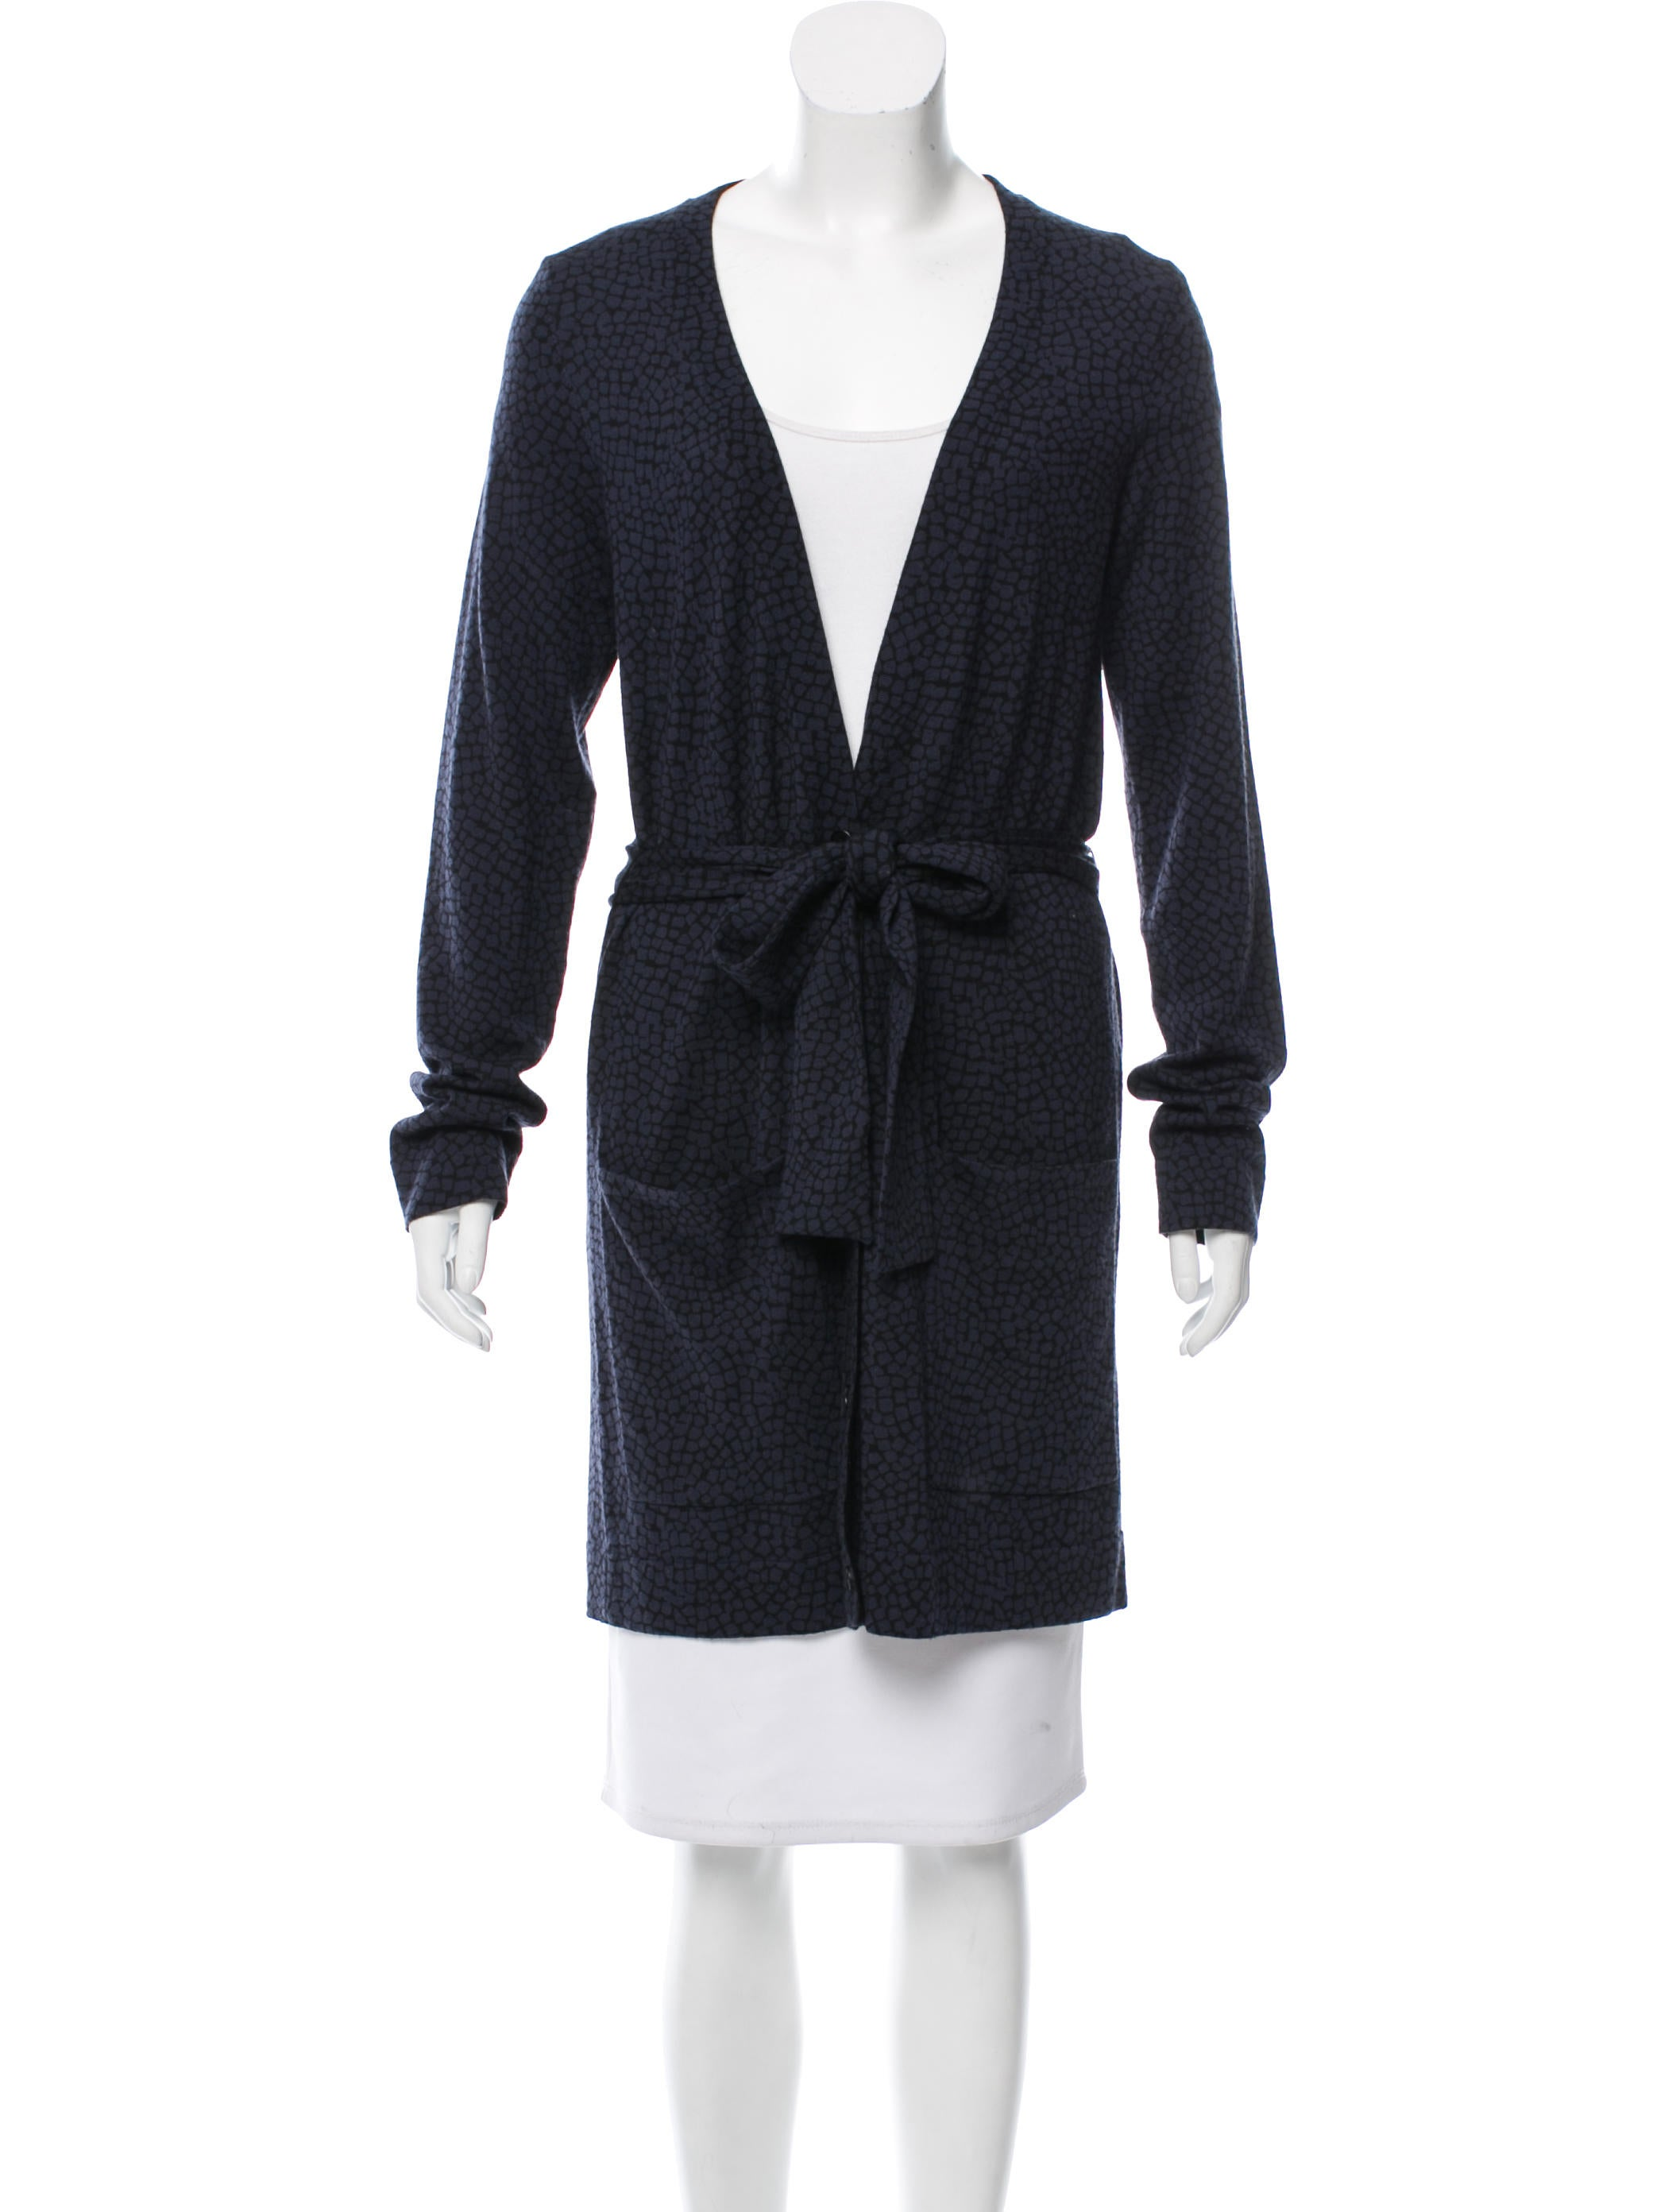 Diane von Furstenberg Delwyn Button Up Cardigan - Clothing ...